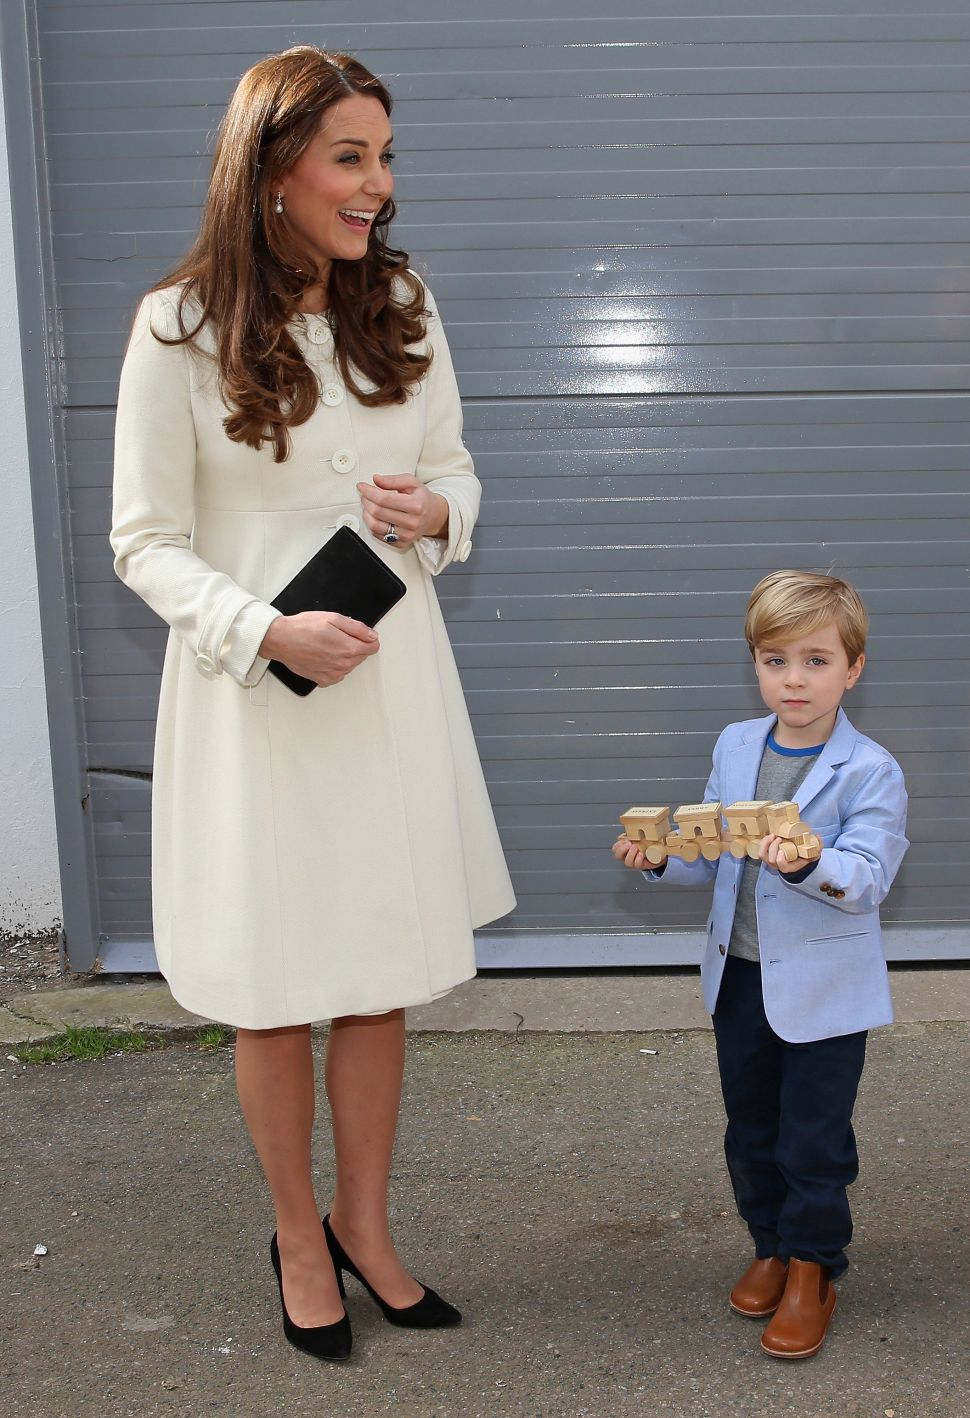 Kate Middleton Visits 'Downton Abbey' in White Coat: Copy Her Look